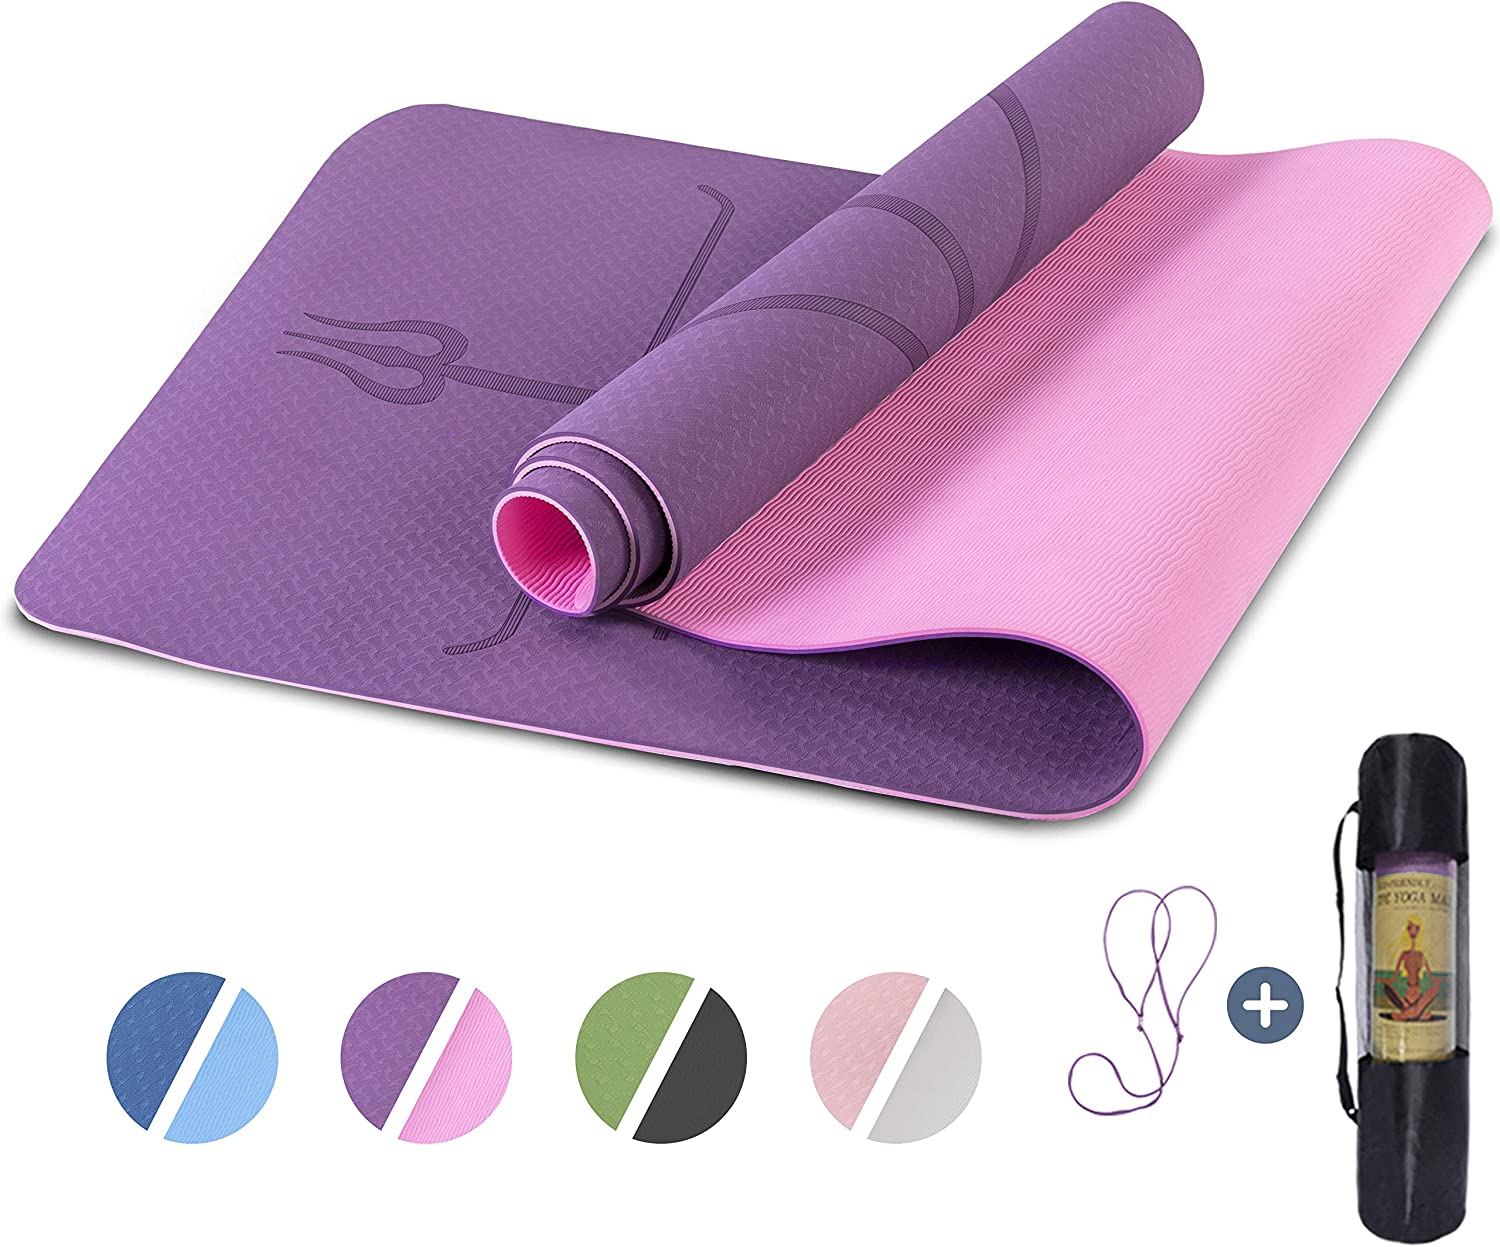 """Yoga Mat Non Slip, Pilates Fitness Mats with Alignment Marks, Eco Friendly, Anti-Tear Yoga Mats for Women, 1/4"""" Exercise Mats for Home Workout with Carrying Strap"""